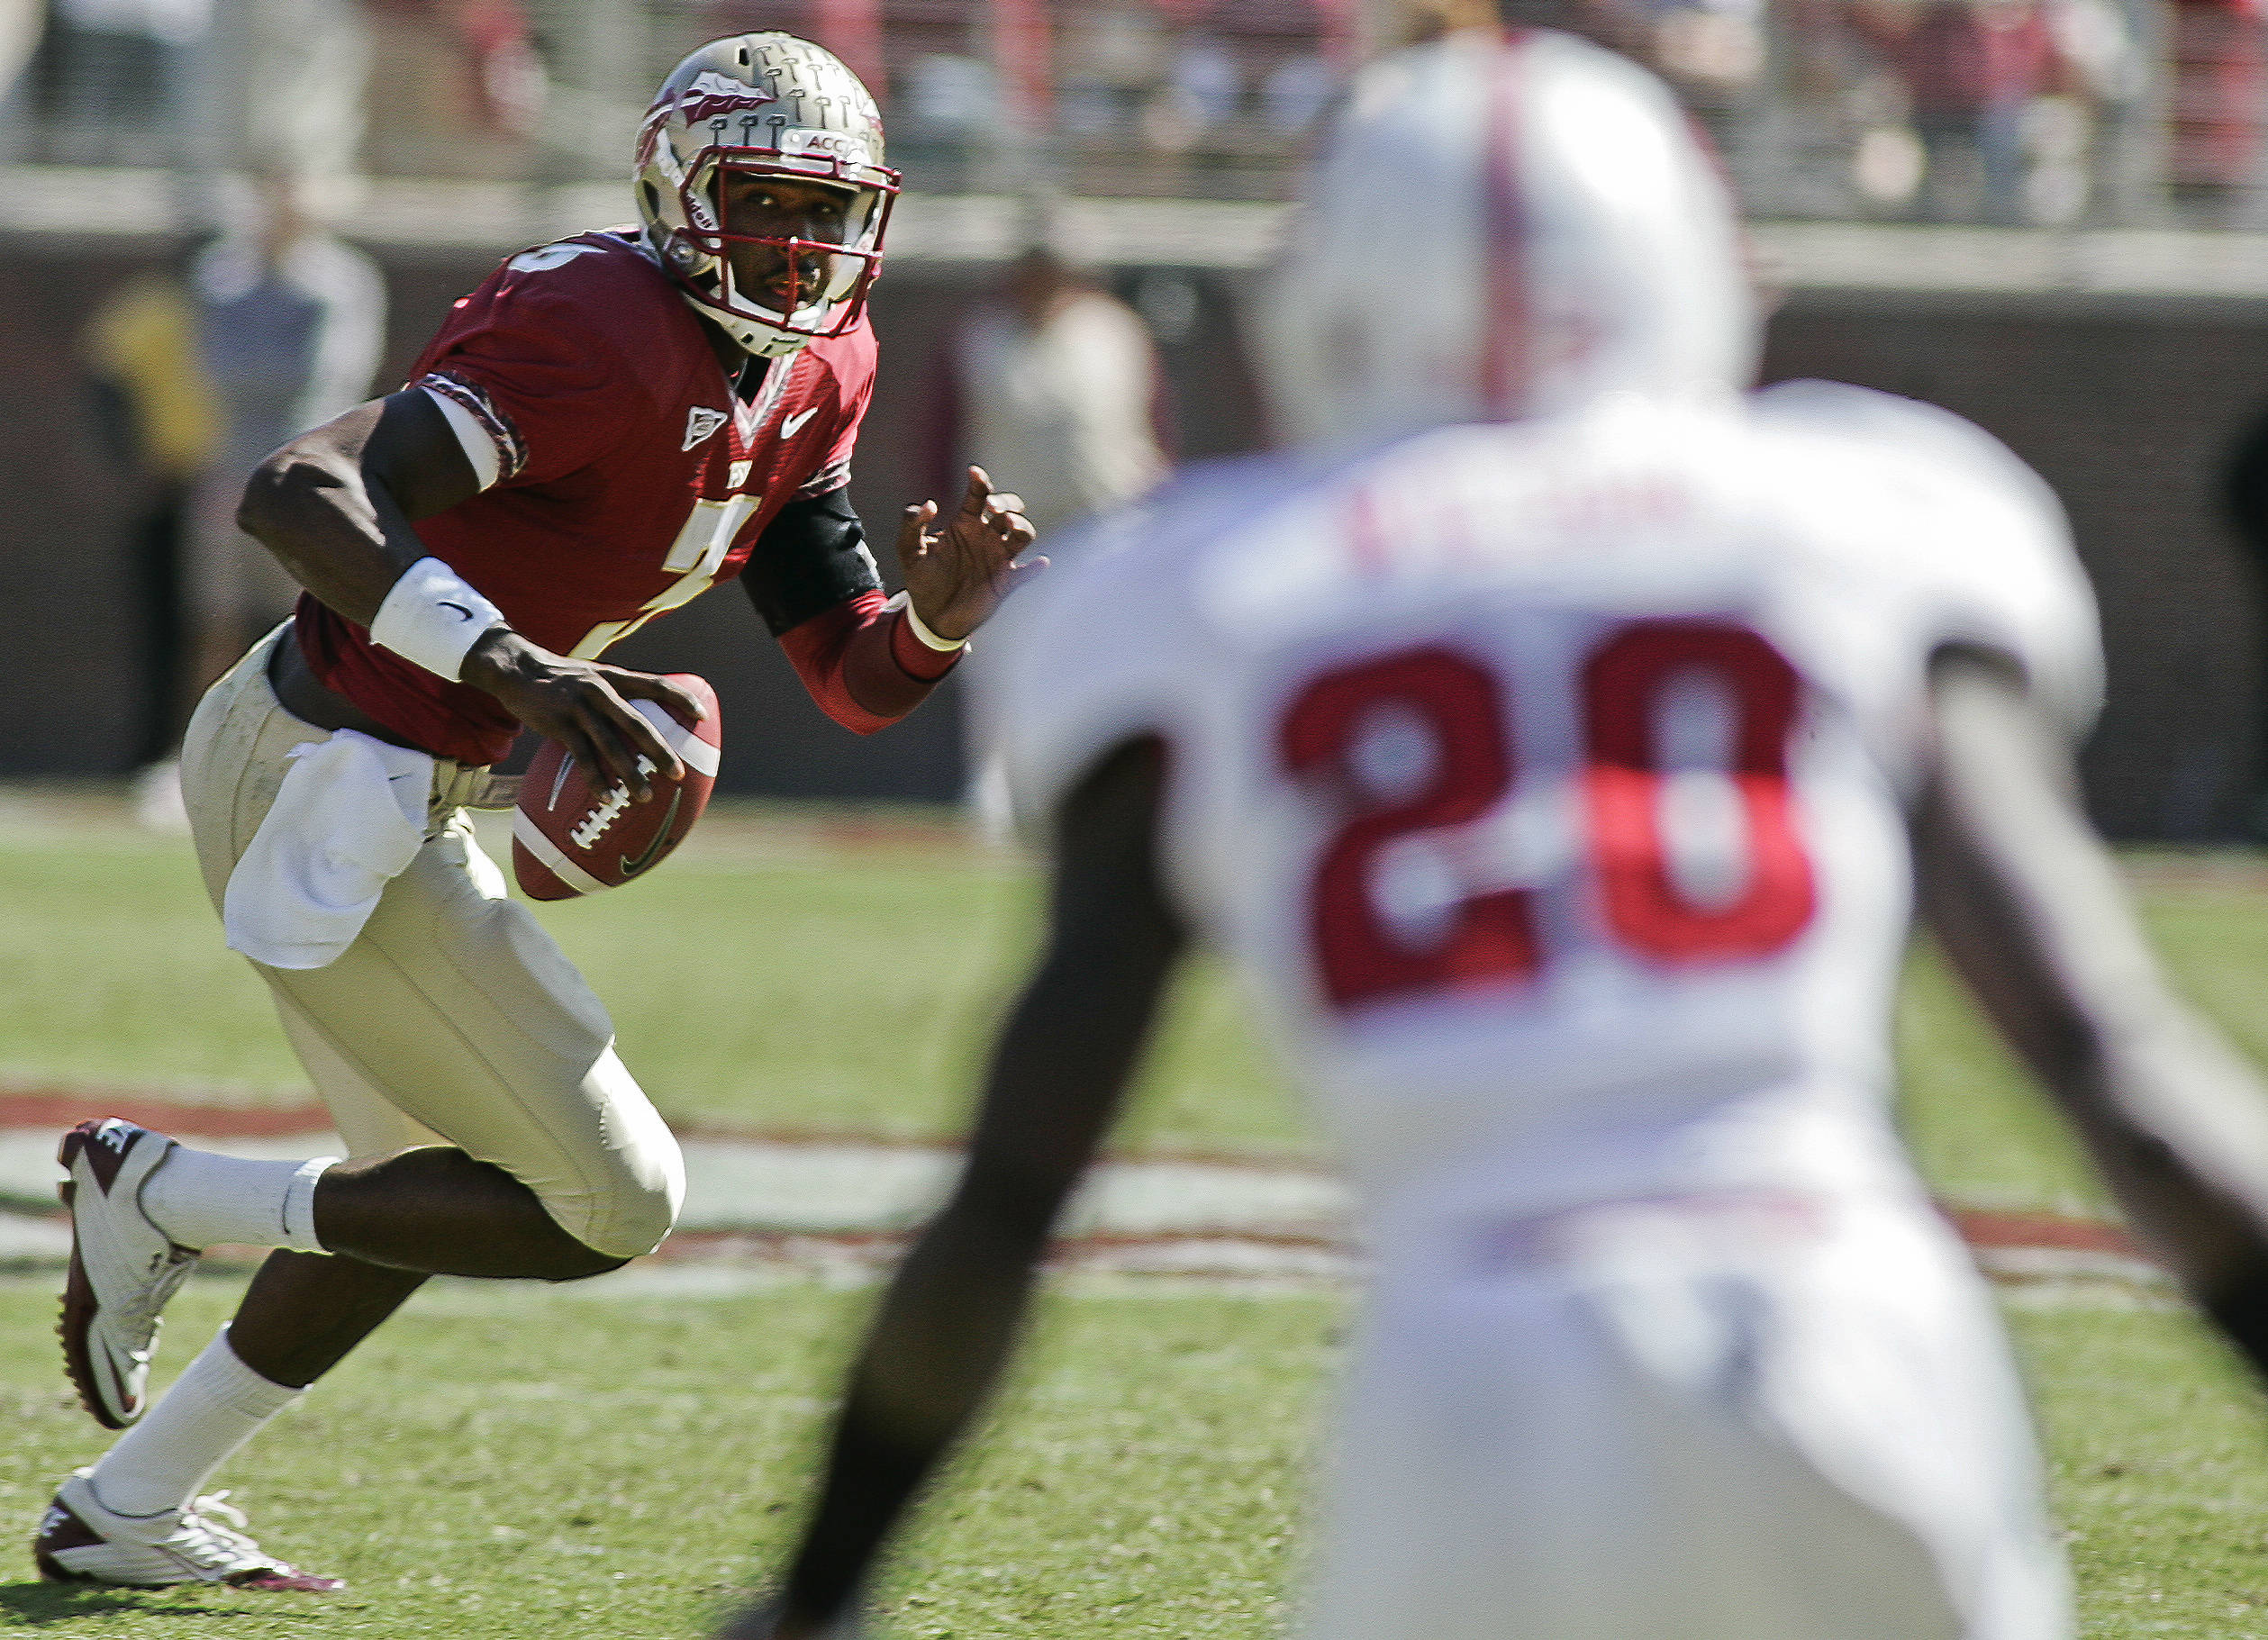 Florida State quarterback E.J. Manuel (3) scrambles out of the pocket in the second quarter against North Carolina State. (AP Photo/Phil Sears)